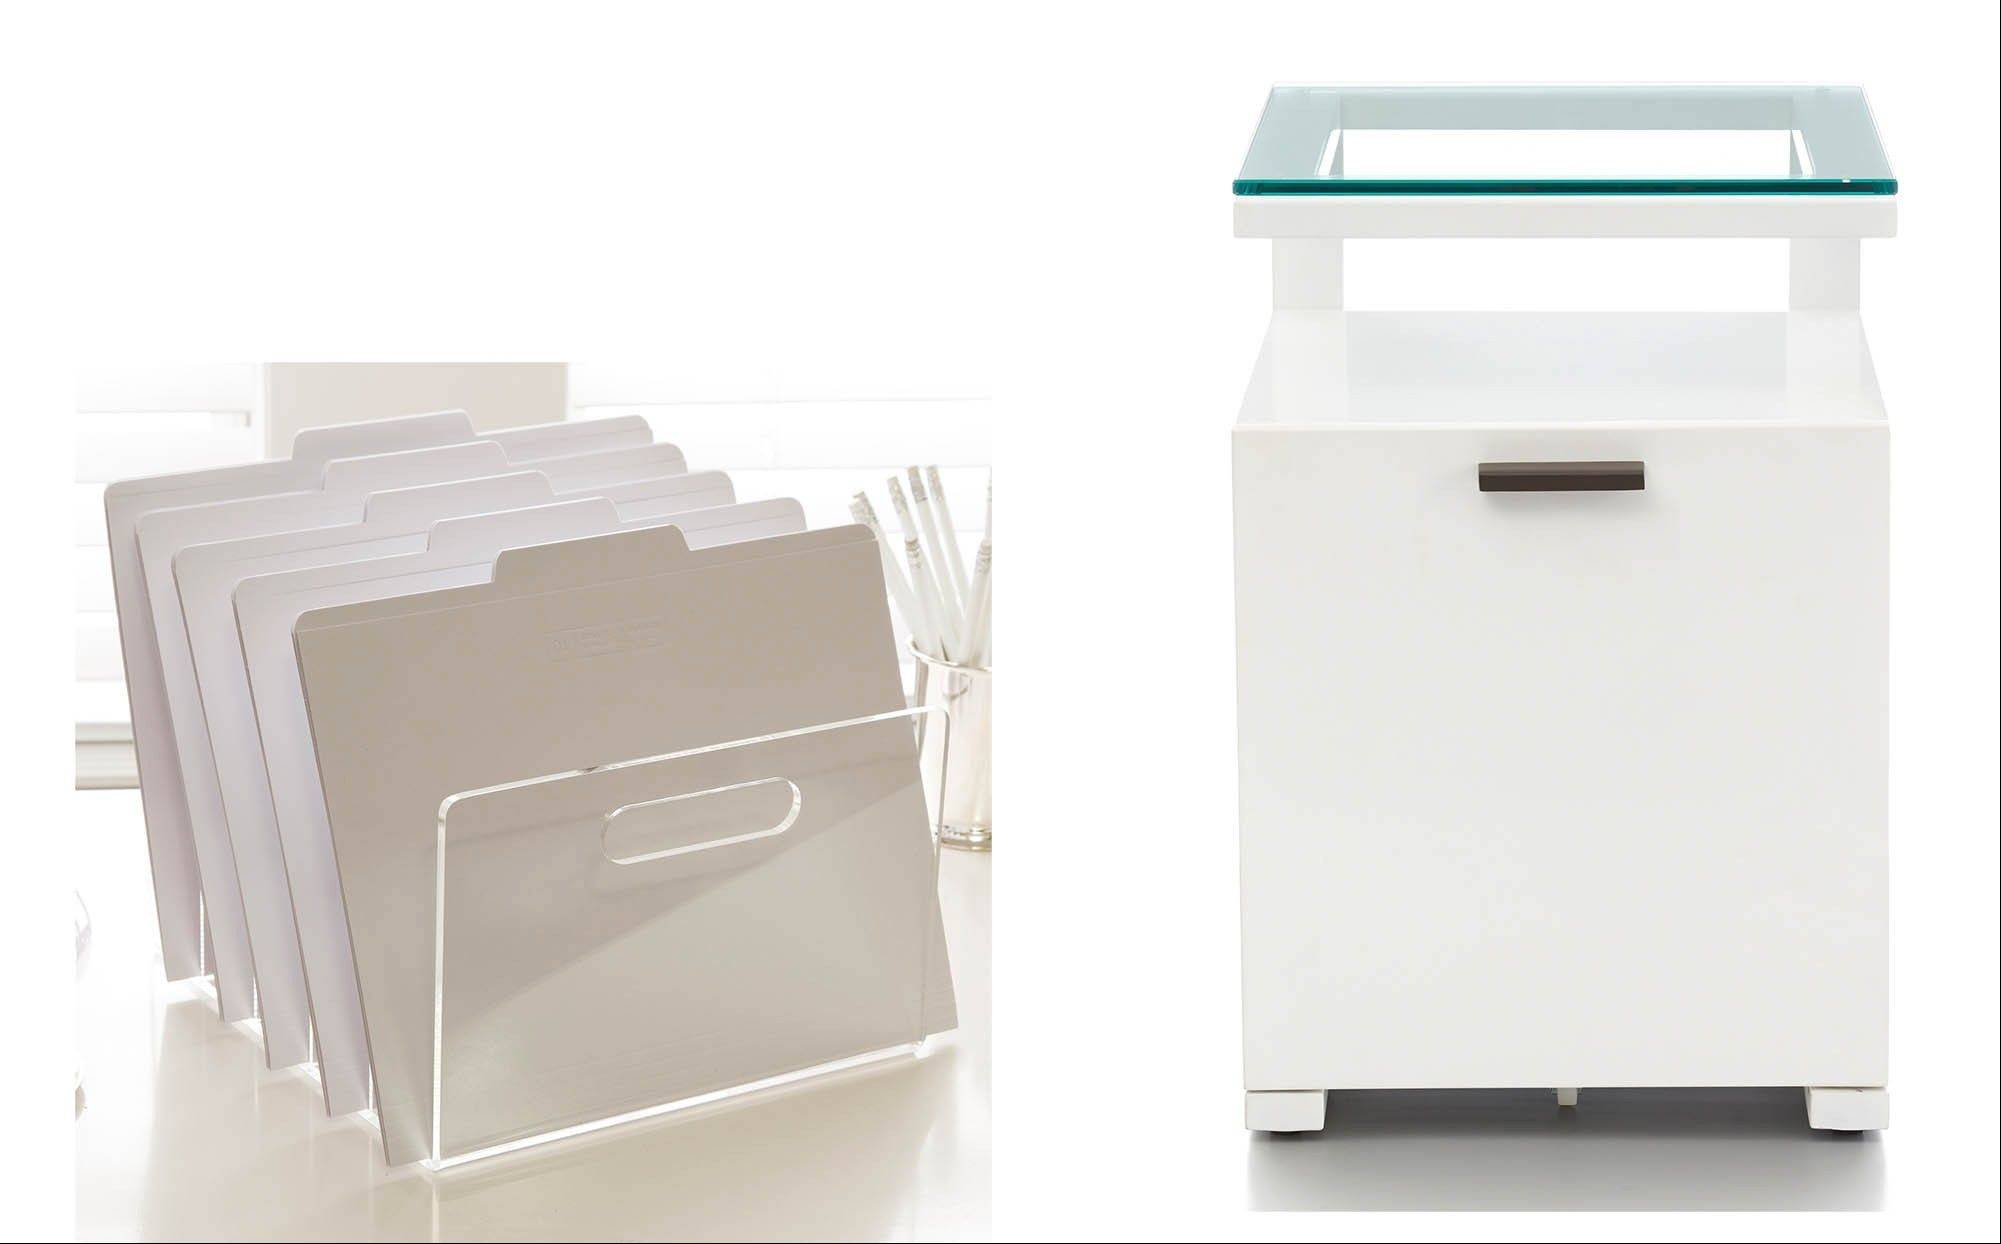 Places to store papers in your home office: left, Russell + Hazel's acrylic collator, available at See Jane Work; right, the Pilsen Salt Filing Cabinet from Crate &Barrel.